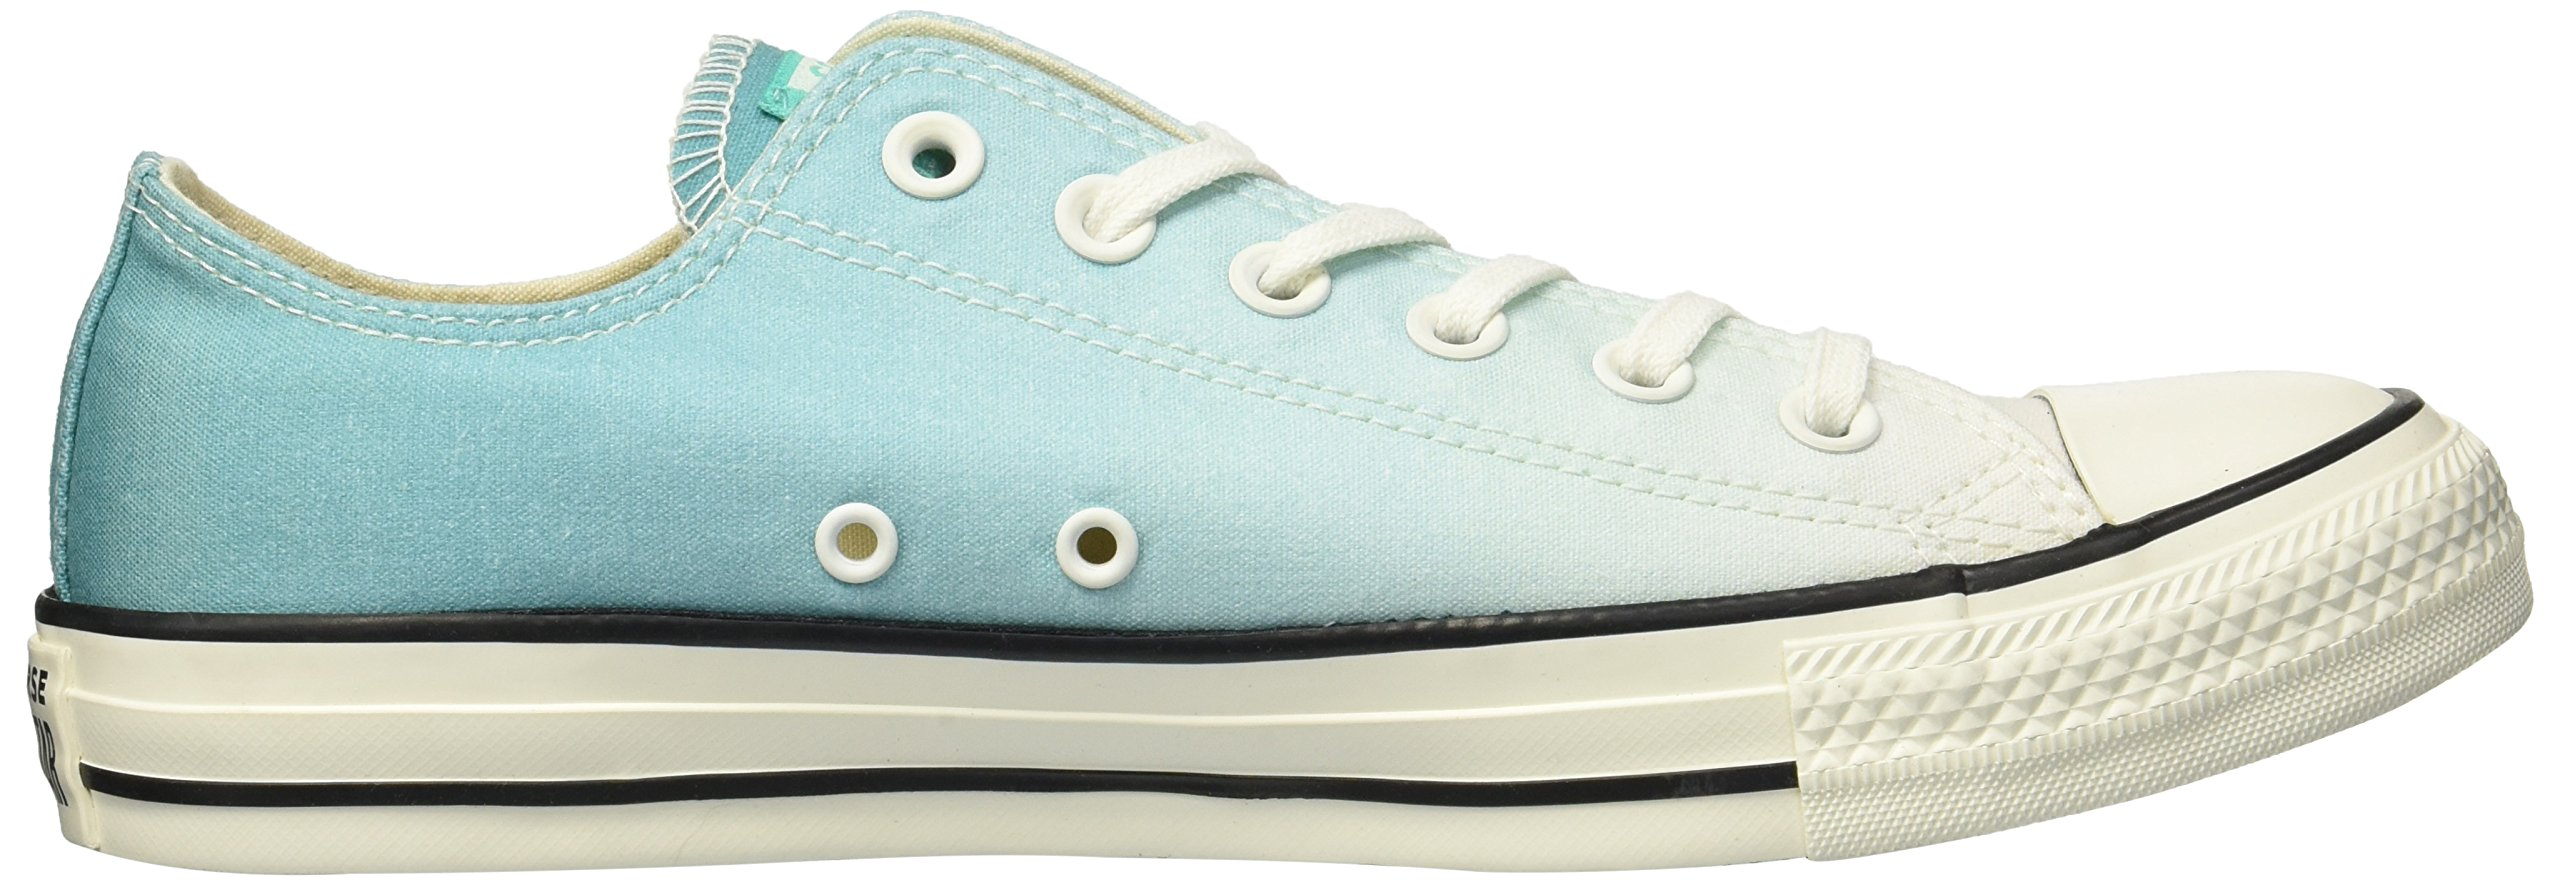 Converse Women's Chuck Taylor All Star Ombre Low TOP Sneaker, Pure Teal egret, 7.5 M US by Converse (Image #6)